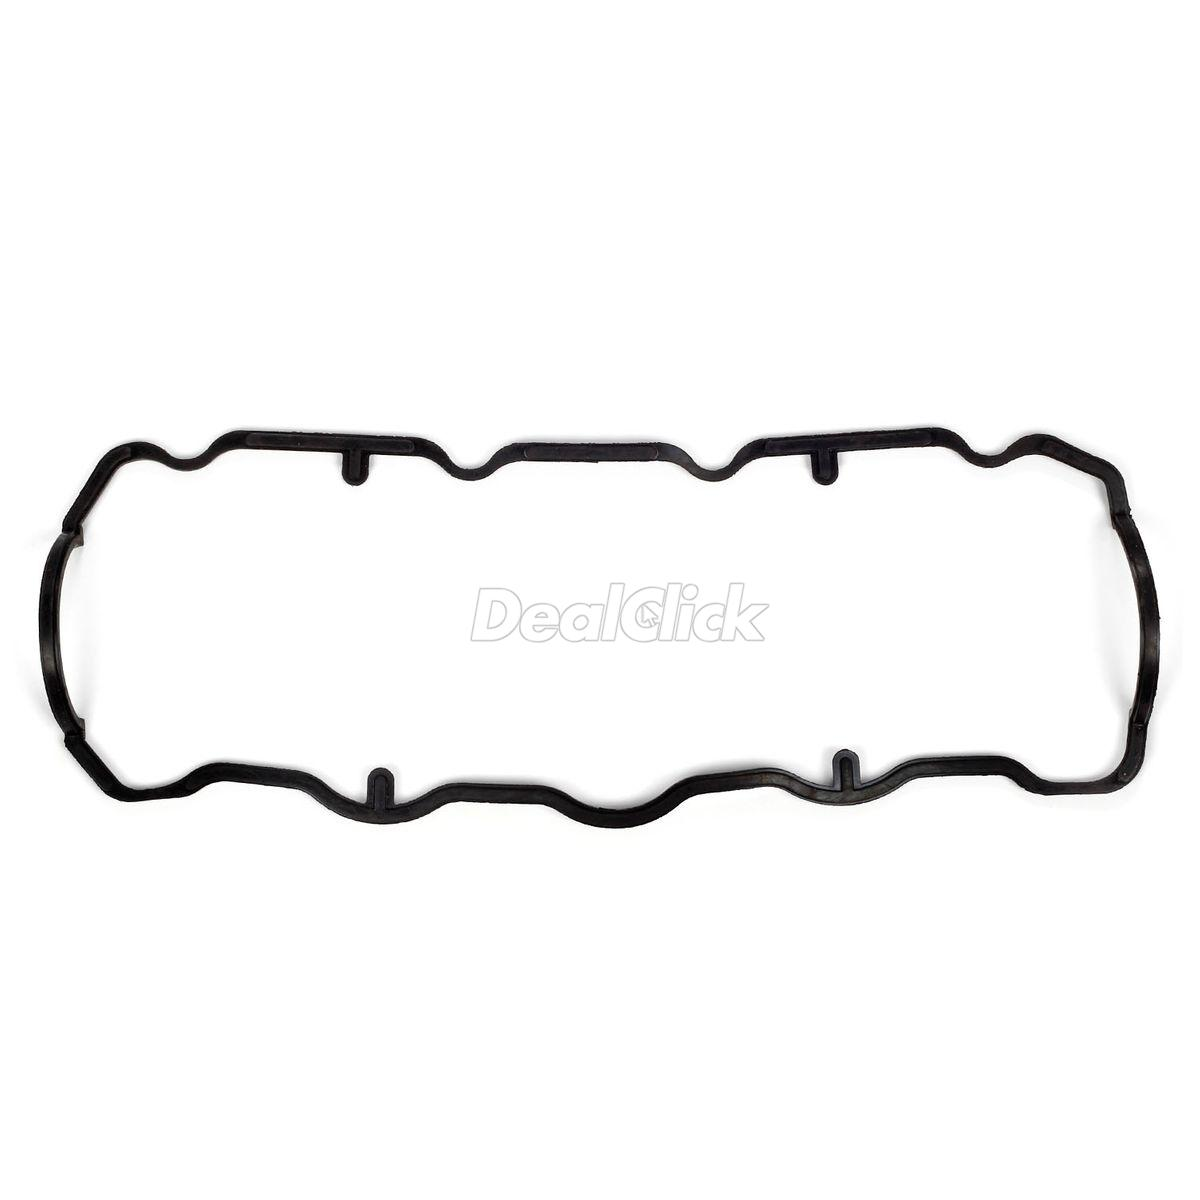 For Vw Beetle Jetta Tdi 1 9 Alh Cylinder Valve Cover